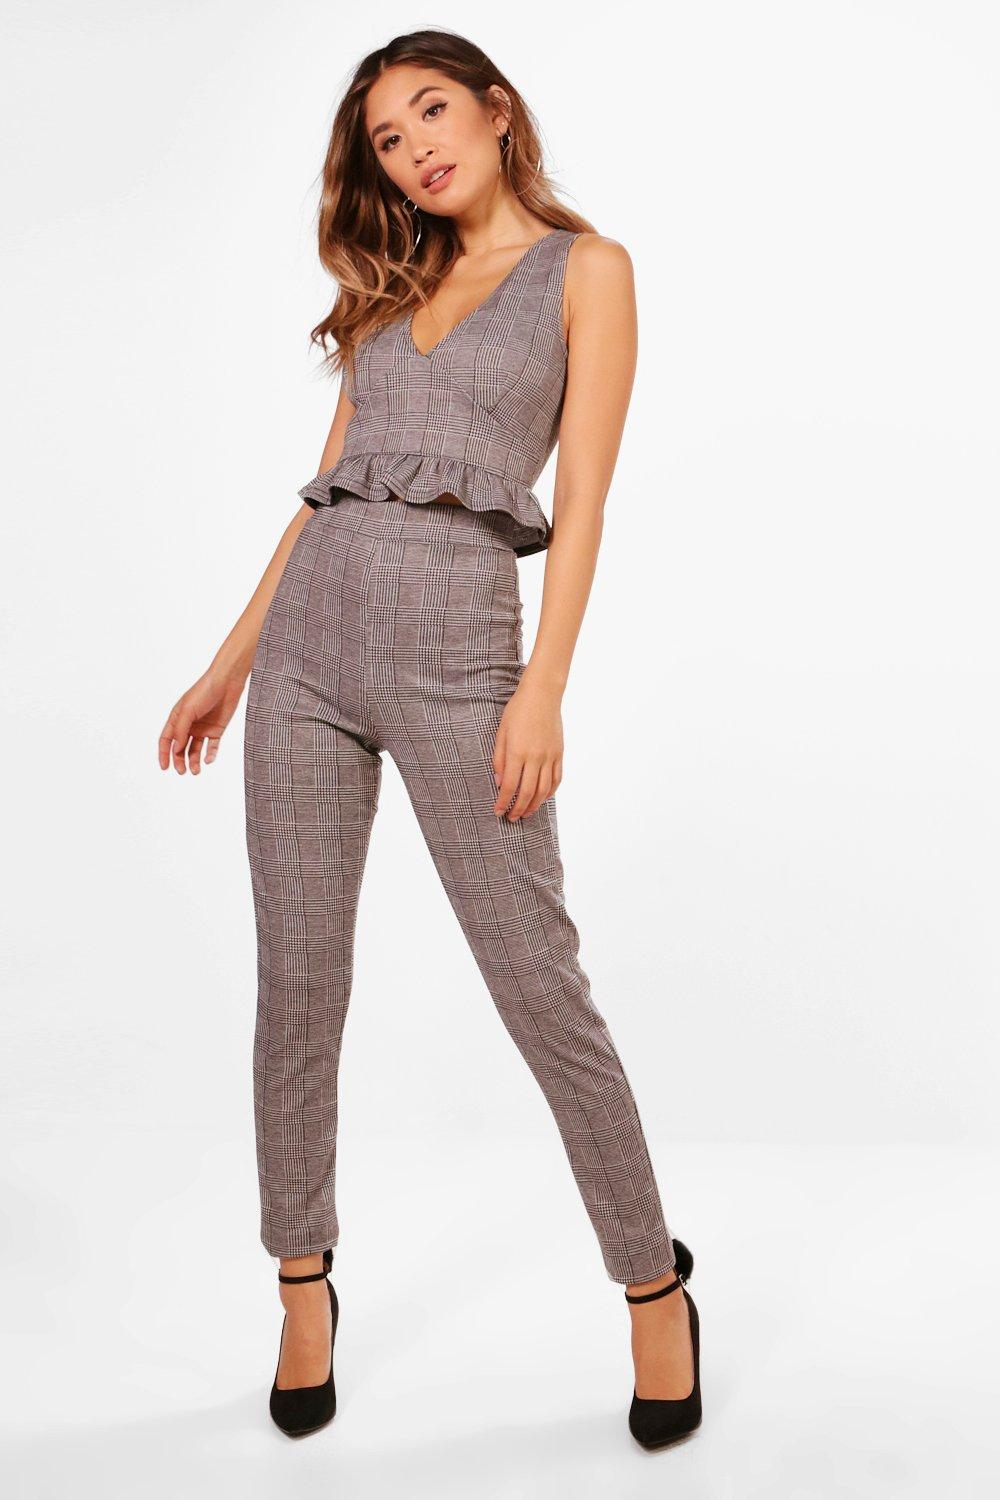 Trouser Set Crop Plunge Skinny grey and Check Iw0qHxBf